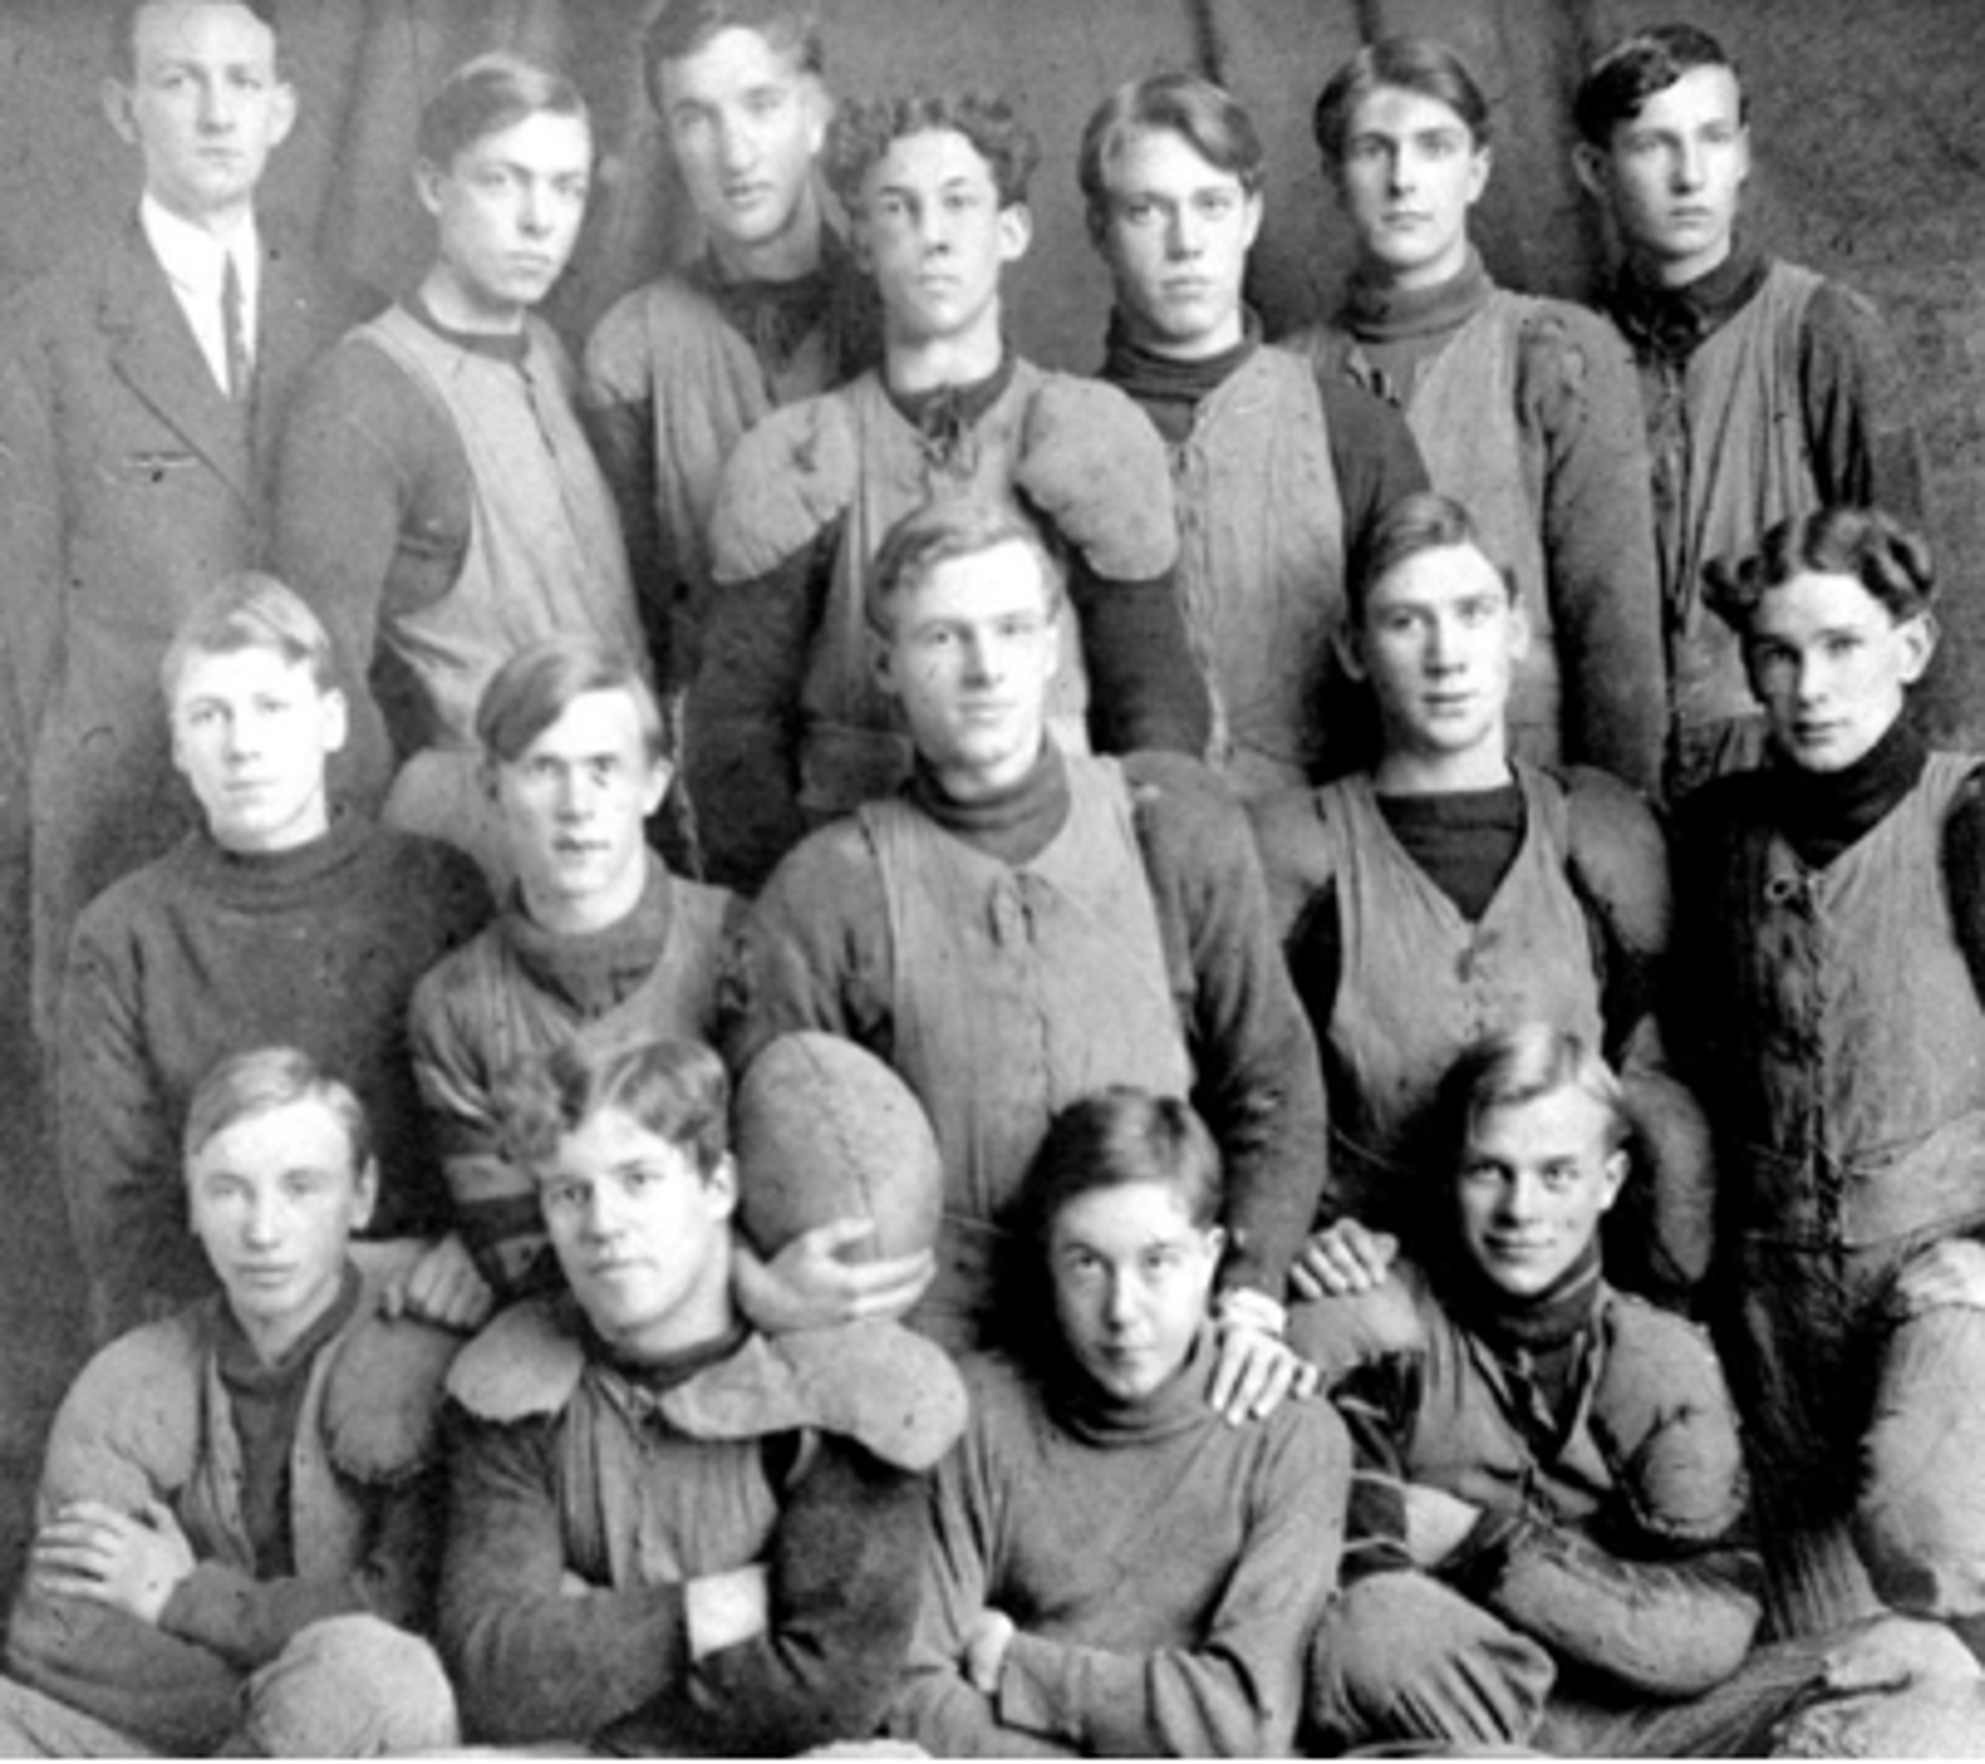 George Winslow (top, second from left) on the 1909 Union High School football team in Bremerton.